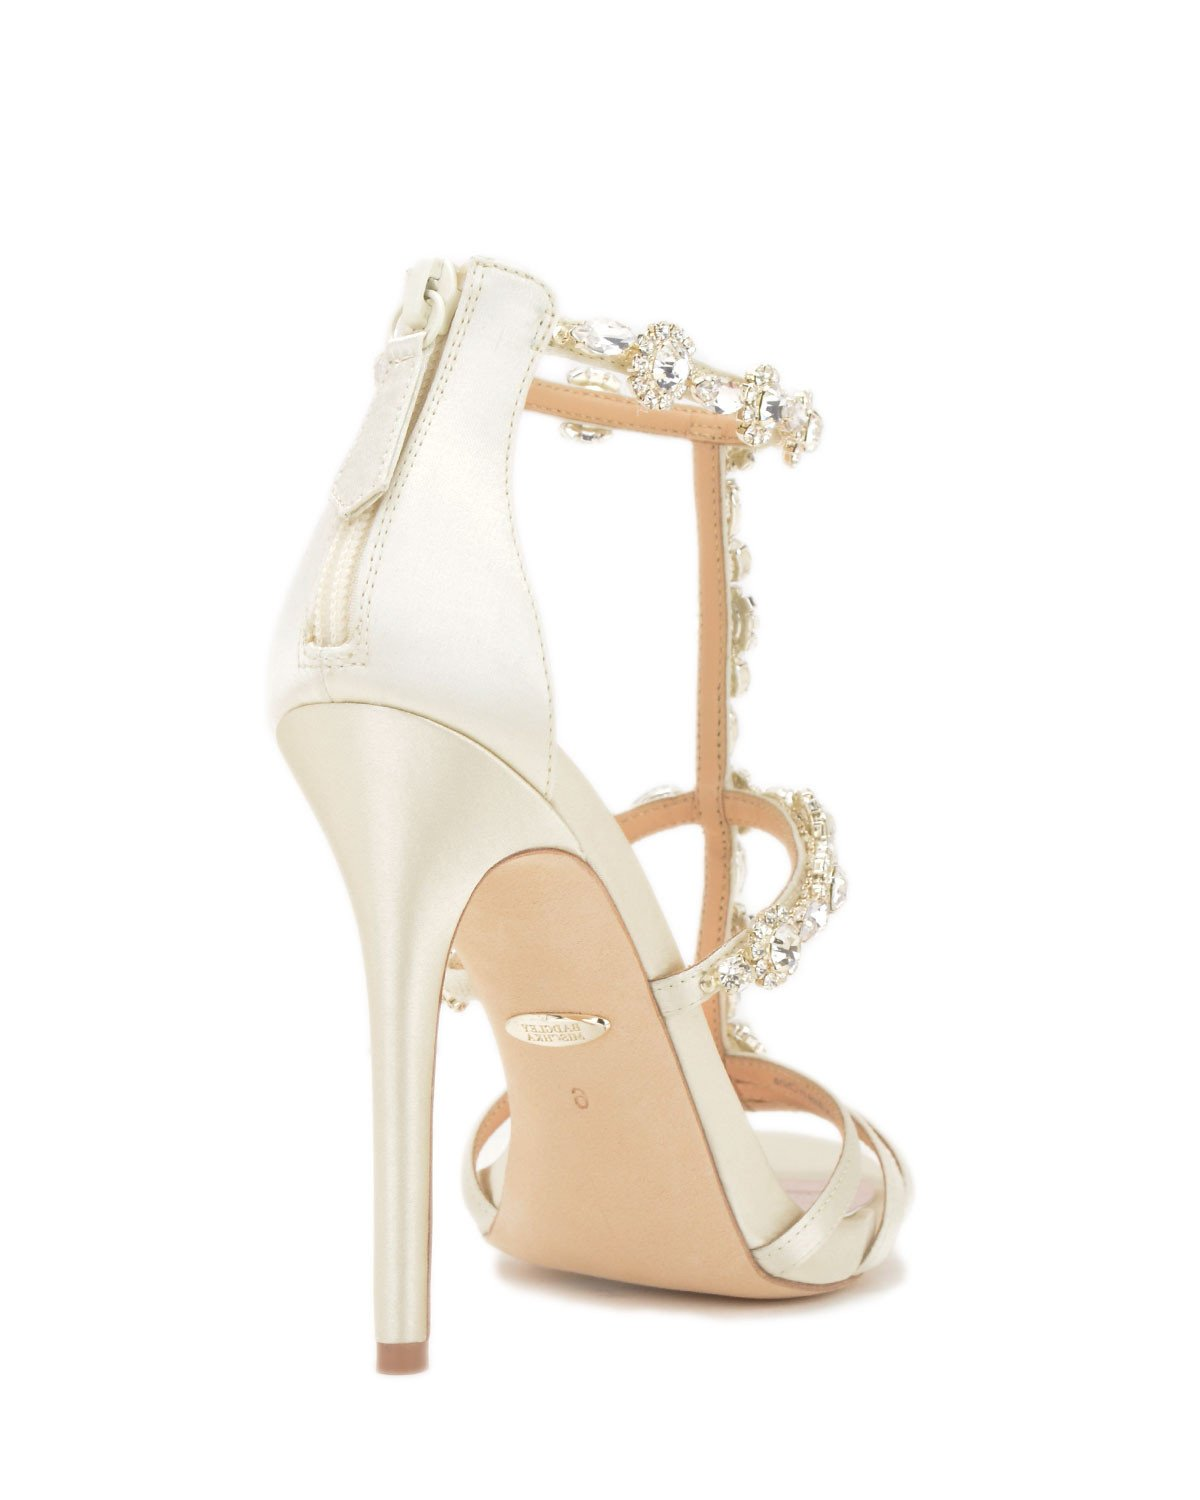 Badgley Mischka Designer Wedding Shoes - Thelma - Ivory